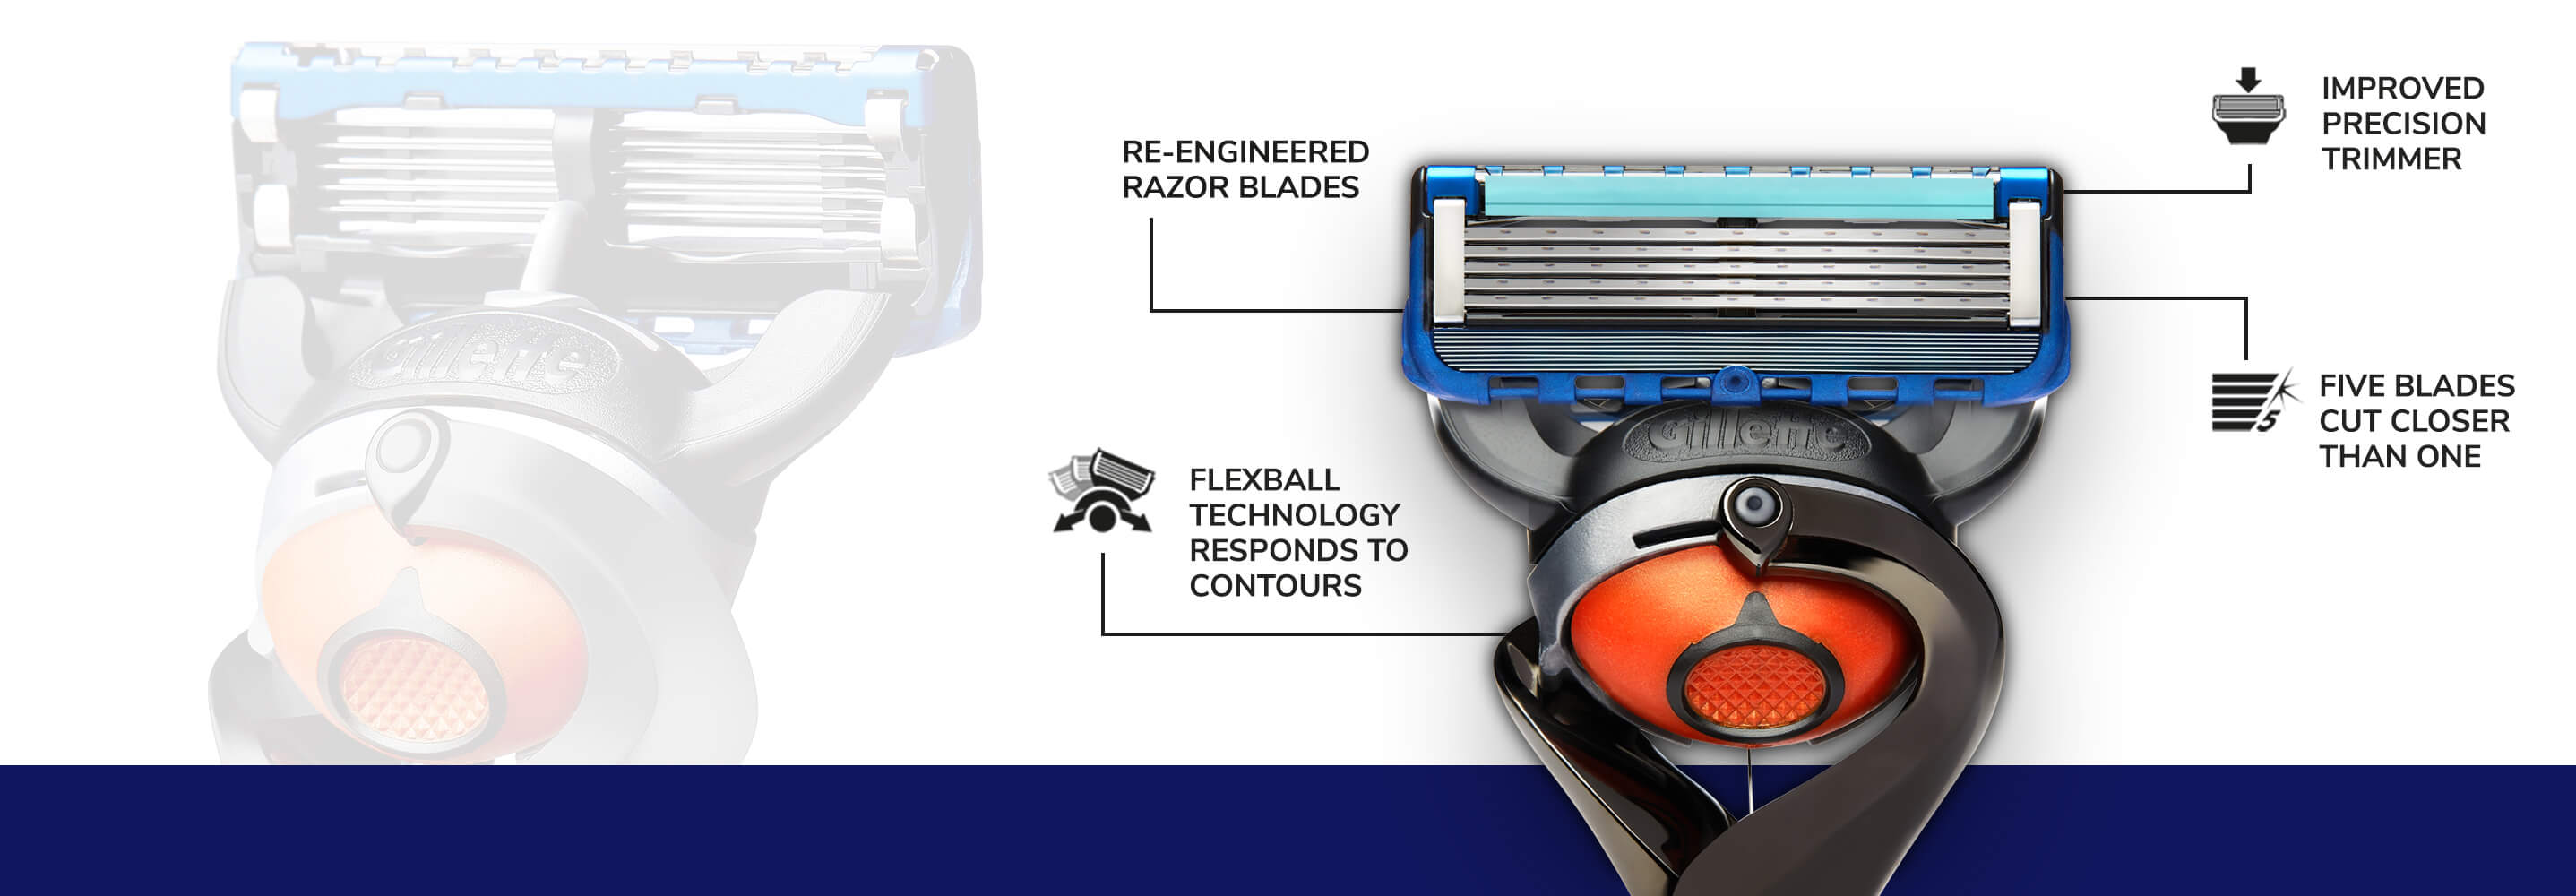 Gillette Fusion5 ProGlide with improved precision trimmer, 5 re-engineered blades and FlexBall technology